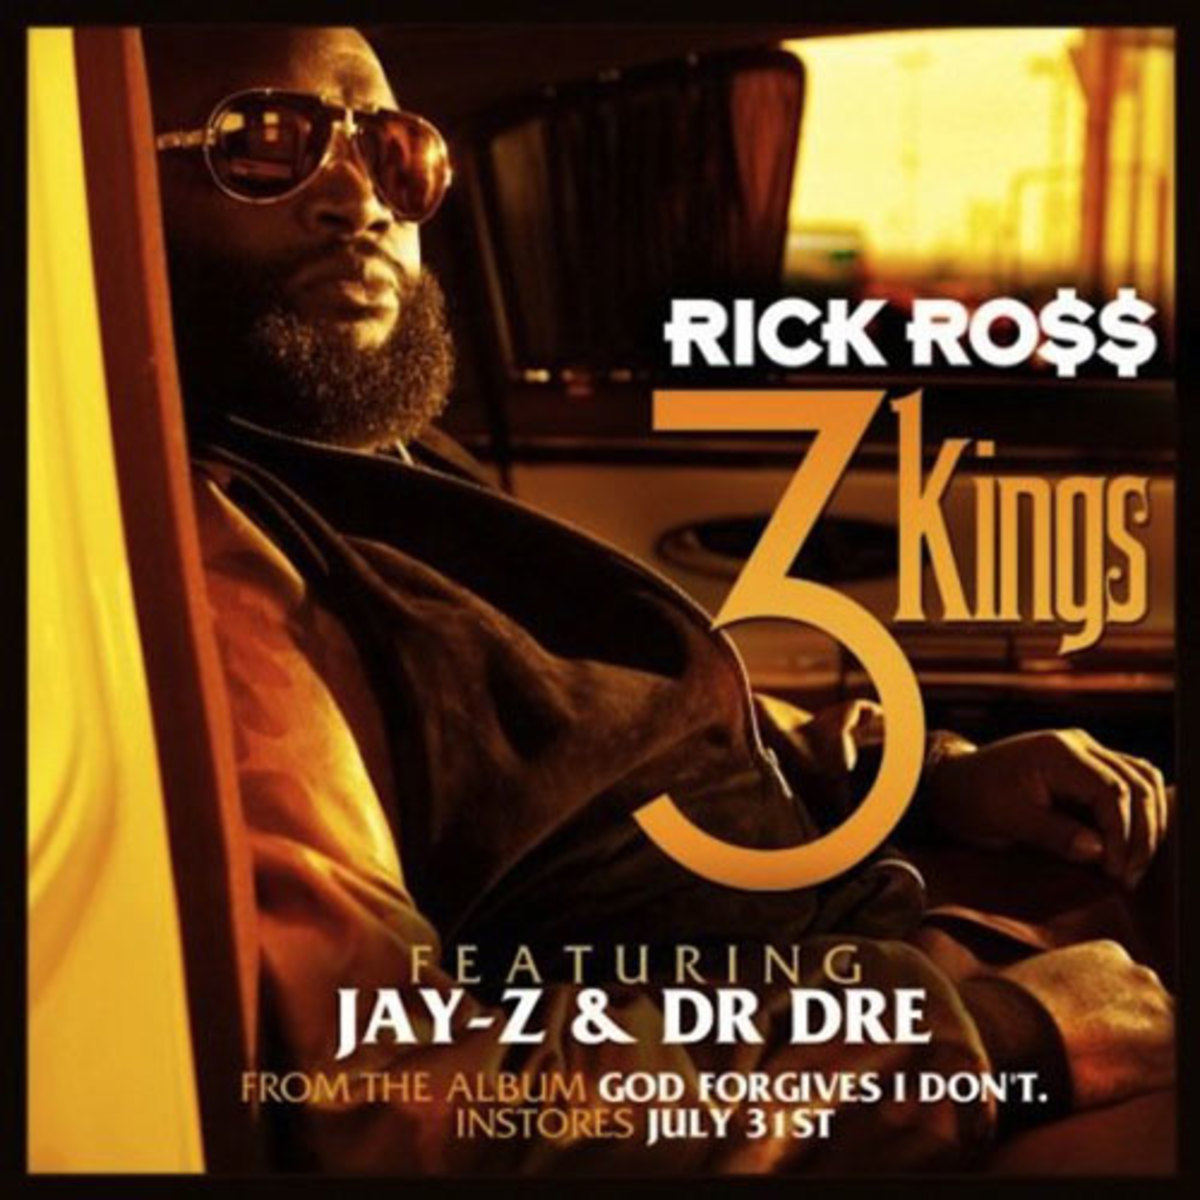 rickross-3kings.jpg